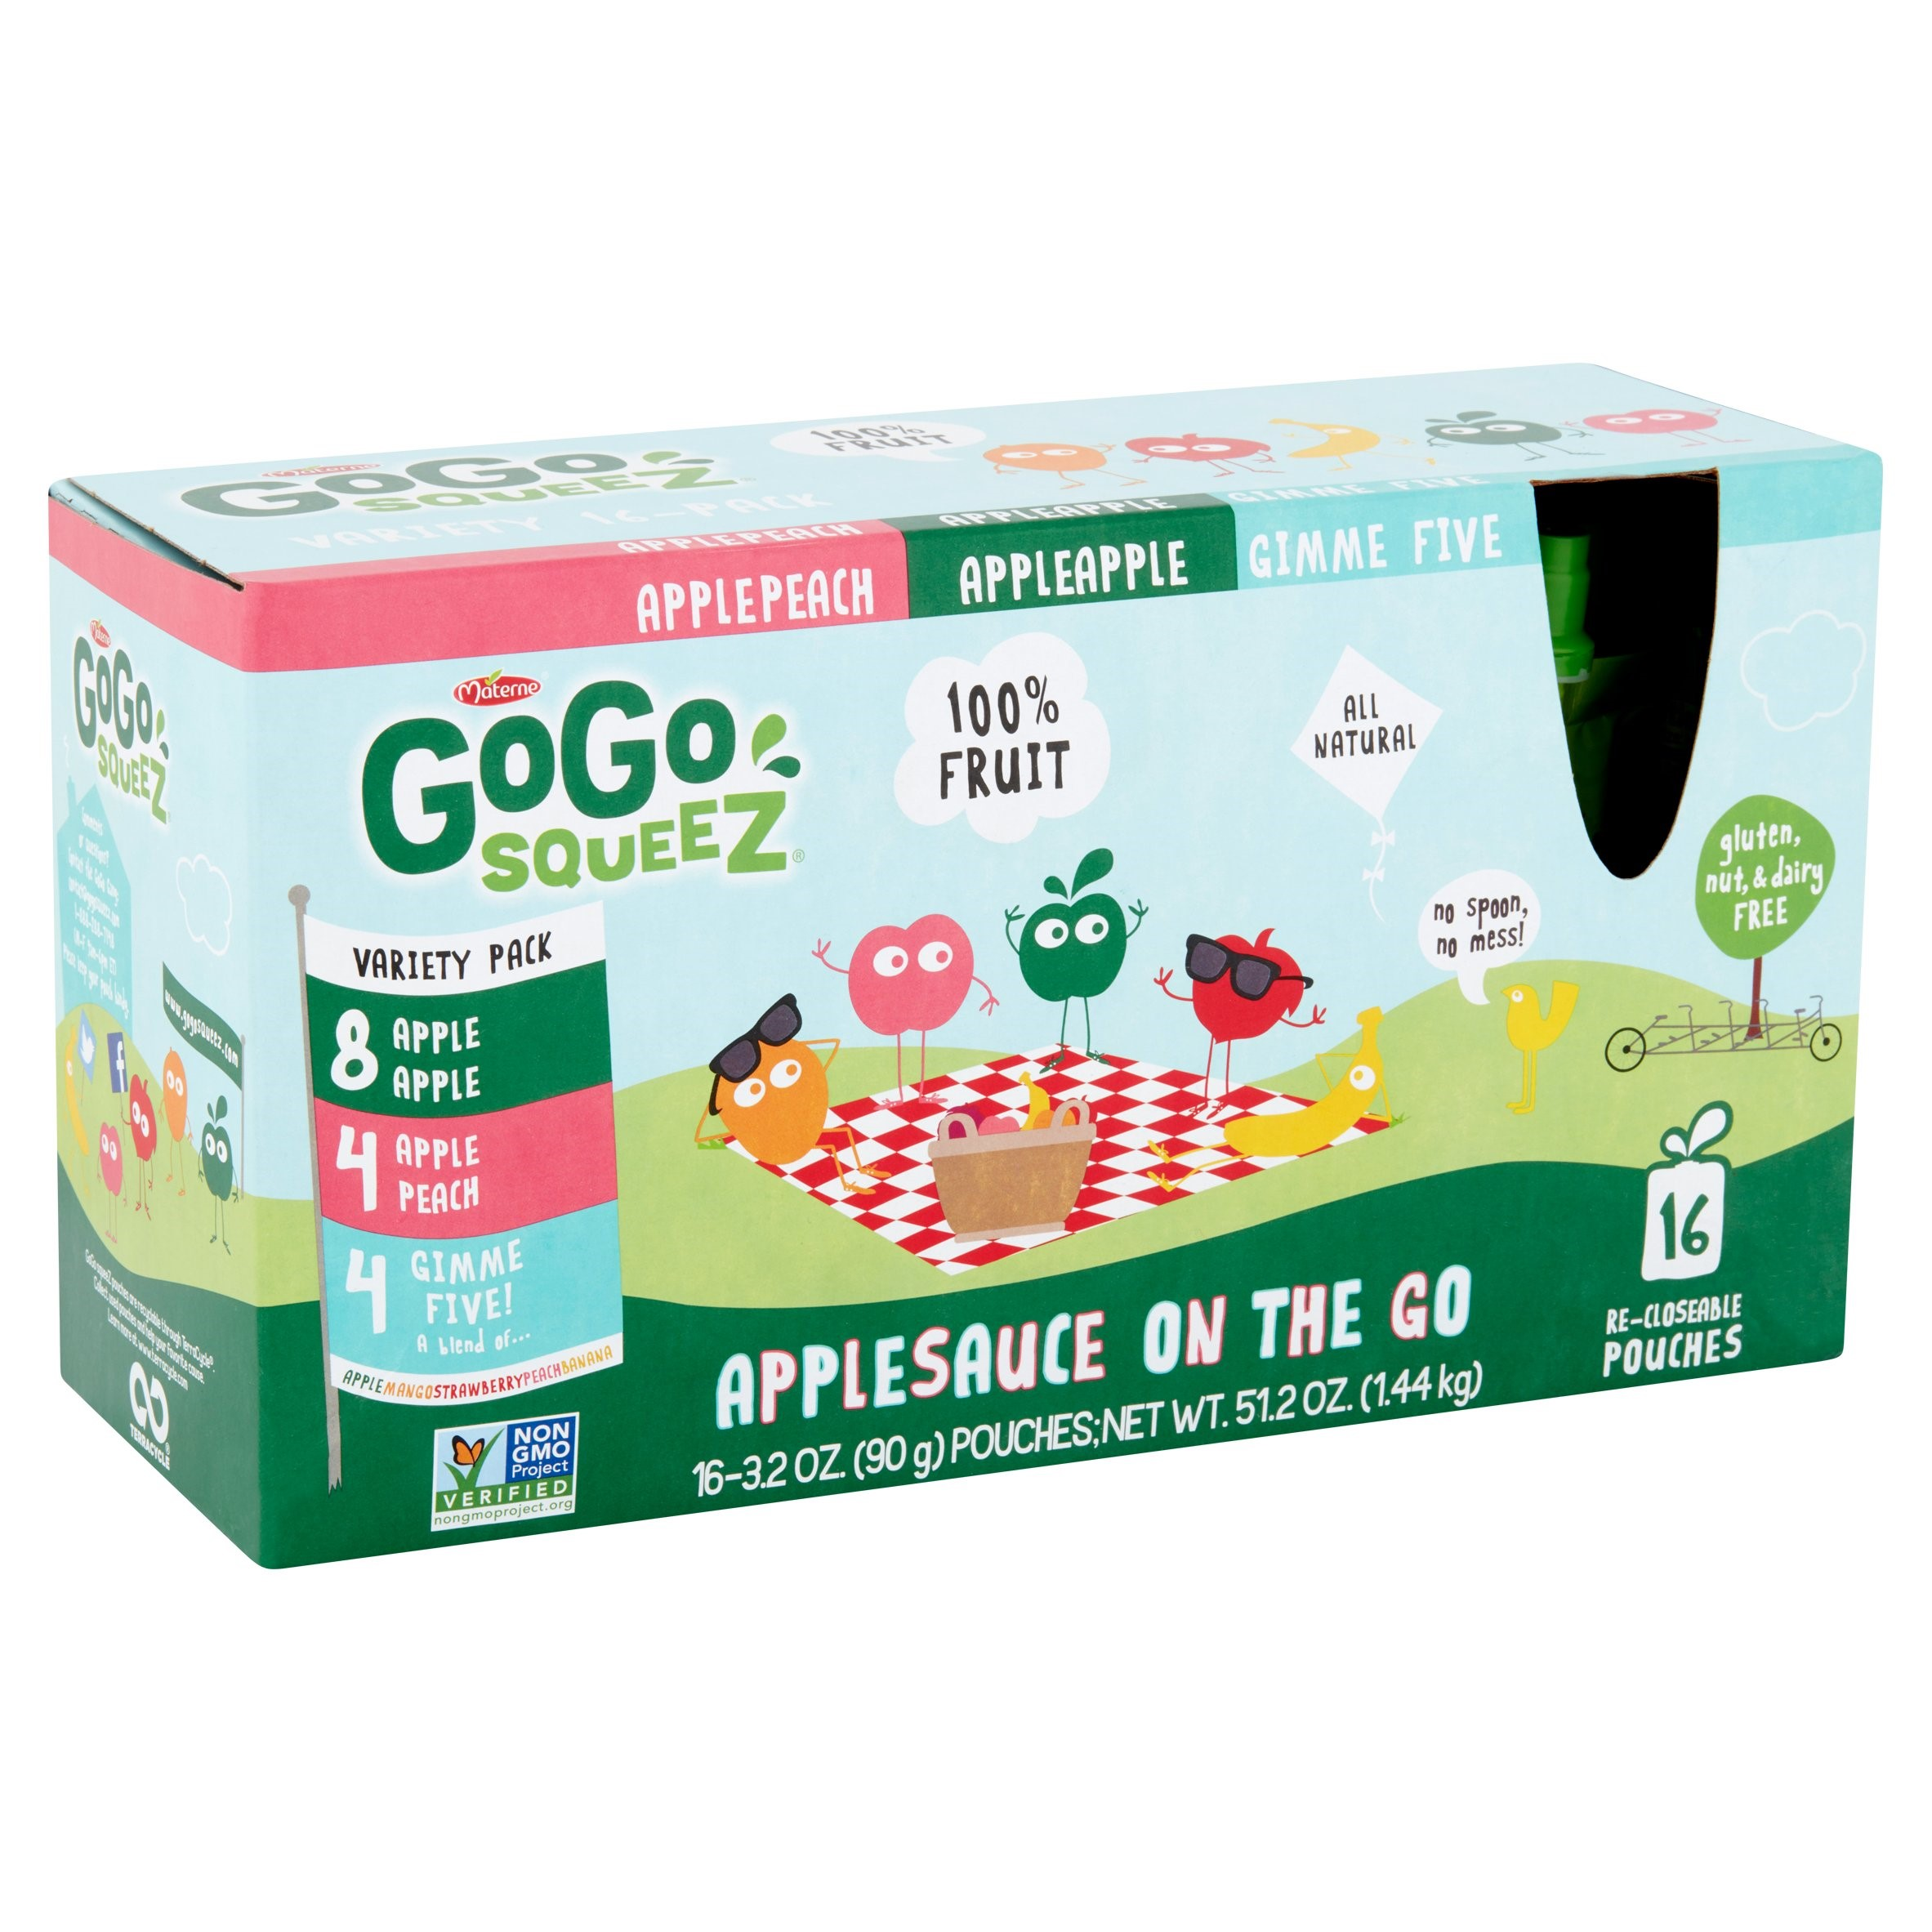 GoGo squeeZ Applesauce On the Go Variety Pack, 3.2 oz, 16 ct